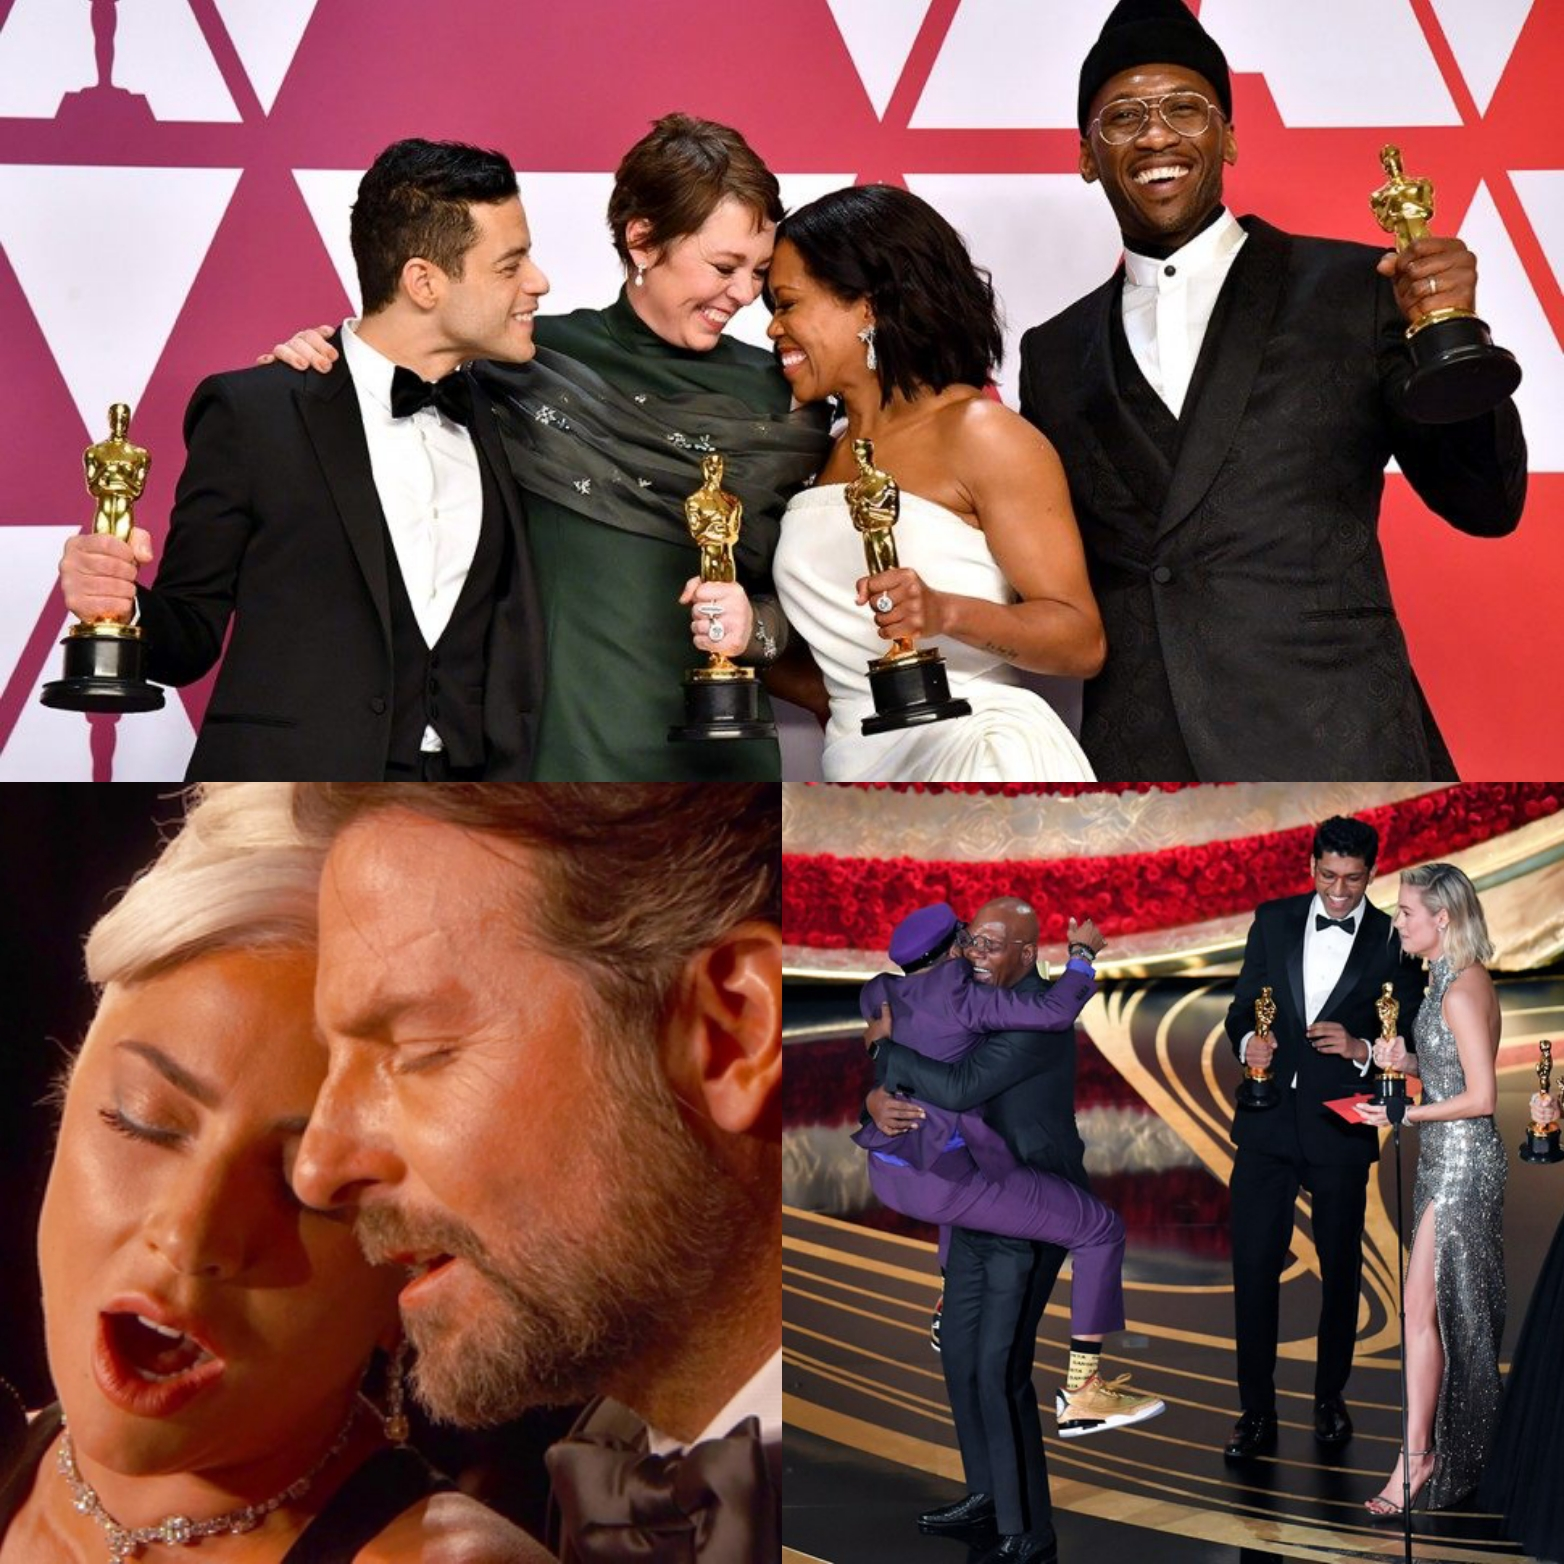 Oscars Wrap-Up 2019 - Amanda welcomes back Brenda, Sean and Stephen to wrap up this year's Oscars. Brenda is annoyed by Rami Malek's win, Sean hopes that The Academy and streaming services like Netflix can compromise going forward, Stephen still thinks there are better Farrelly Brother movies than Green Book, and Amanda wants to see a buddy comedy with Spike Lee and Barbra Streisand.